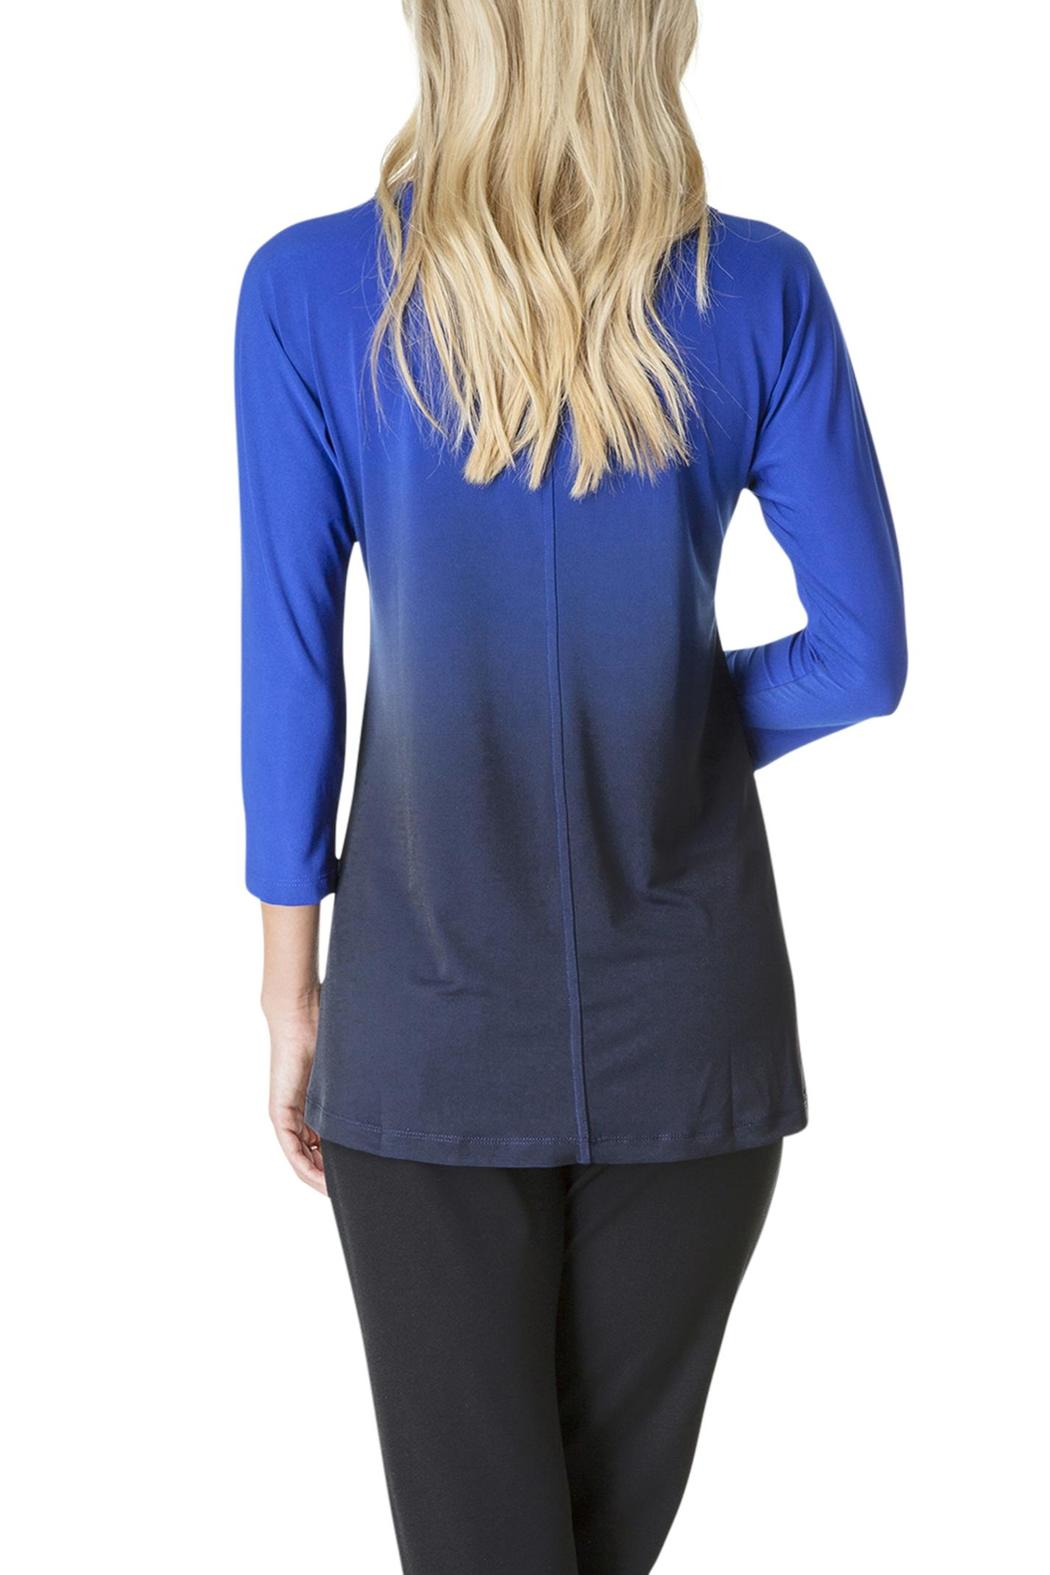 Colletta Ombre Blue Top - Front Full Image